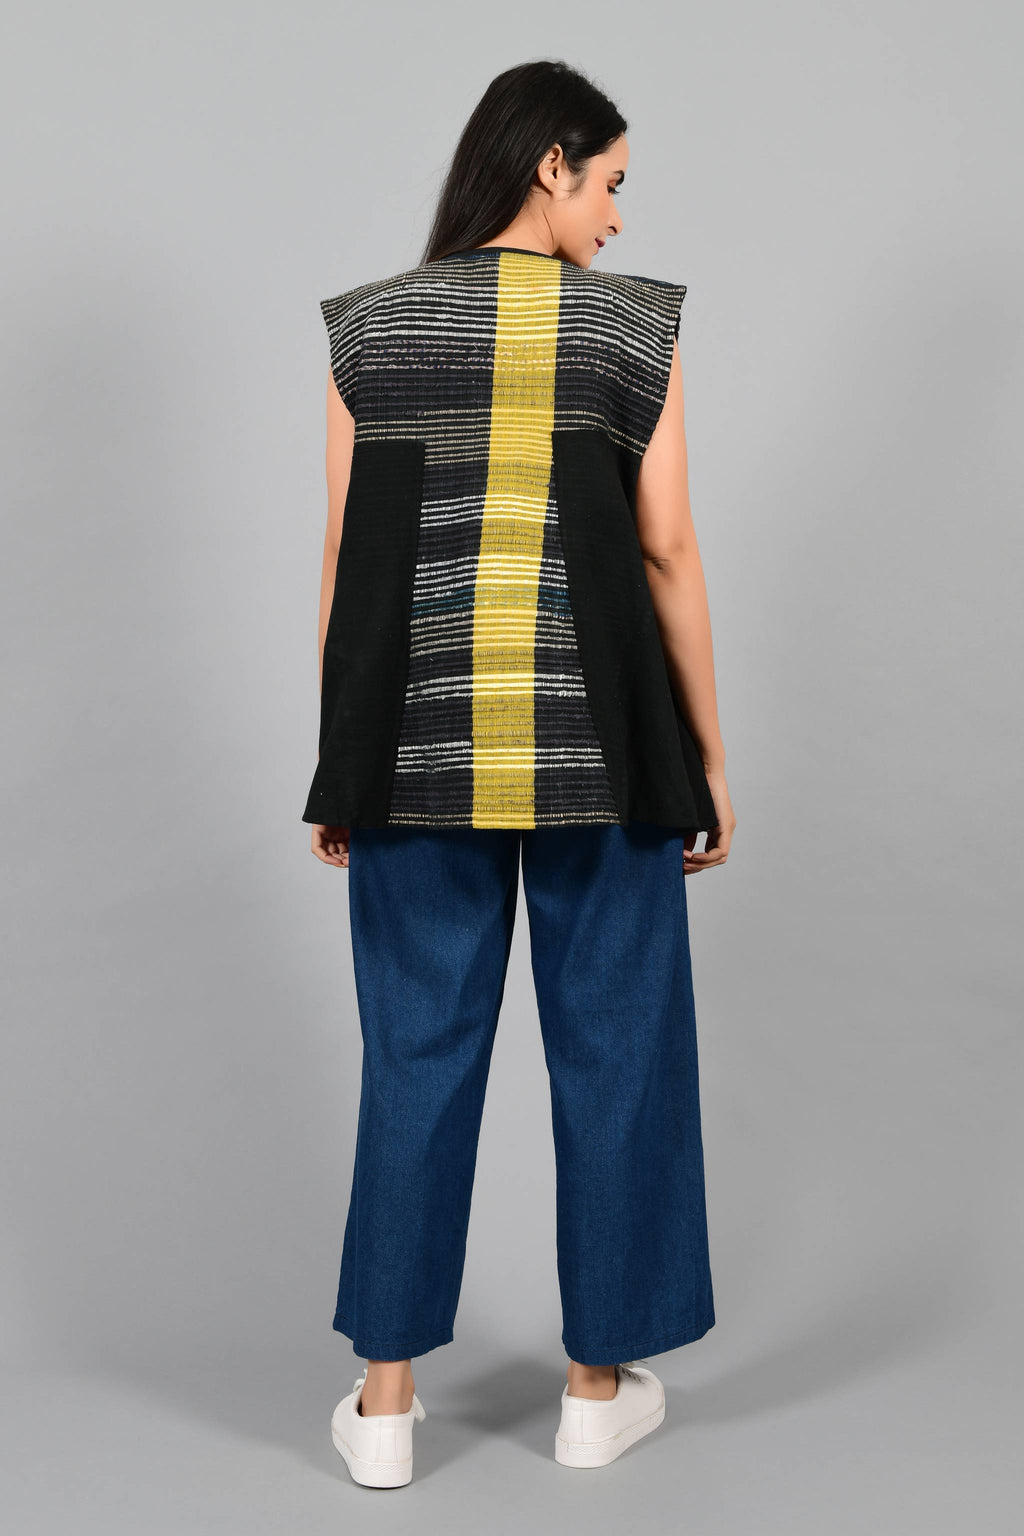 Back pose of an Indian Womenswear female model wearing black upcycled sleeveless jacket with a yellow stripe made with handspun and handwoven cotton by Cotton Rack.